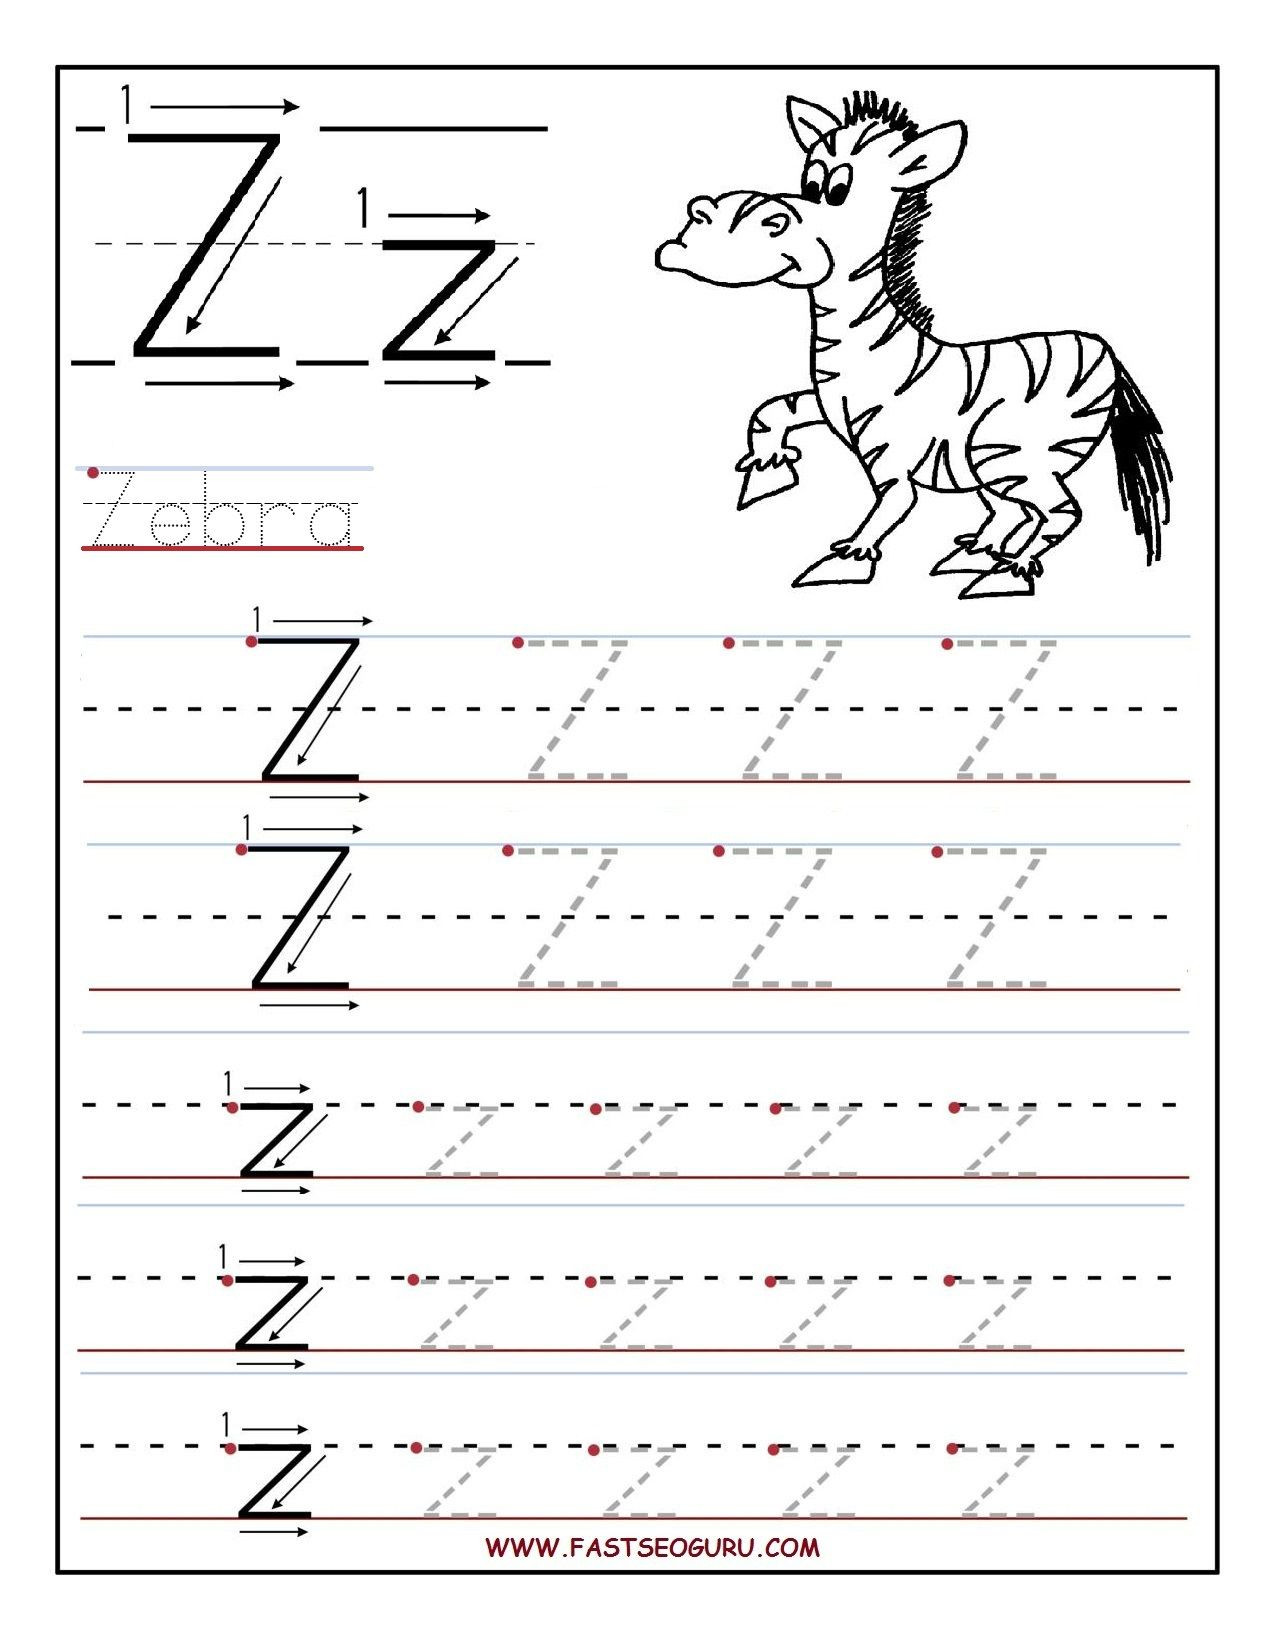 Letter Z Worksheets for Kindergarten Printable Letter Z Tracing Worksheets for Preschool